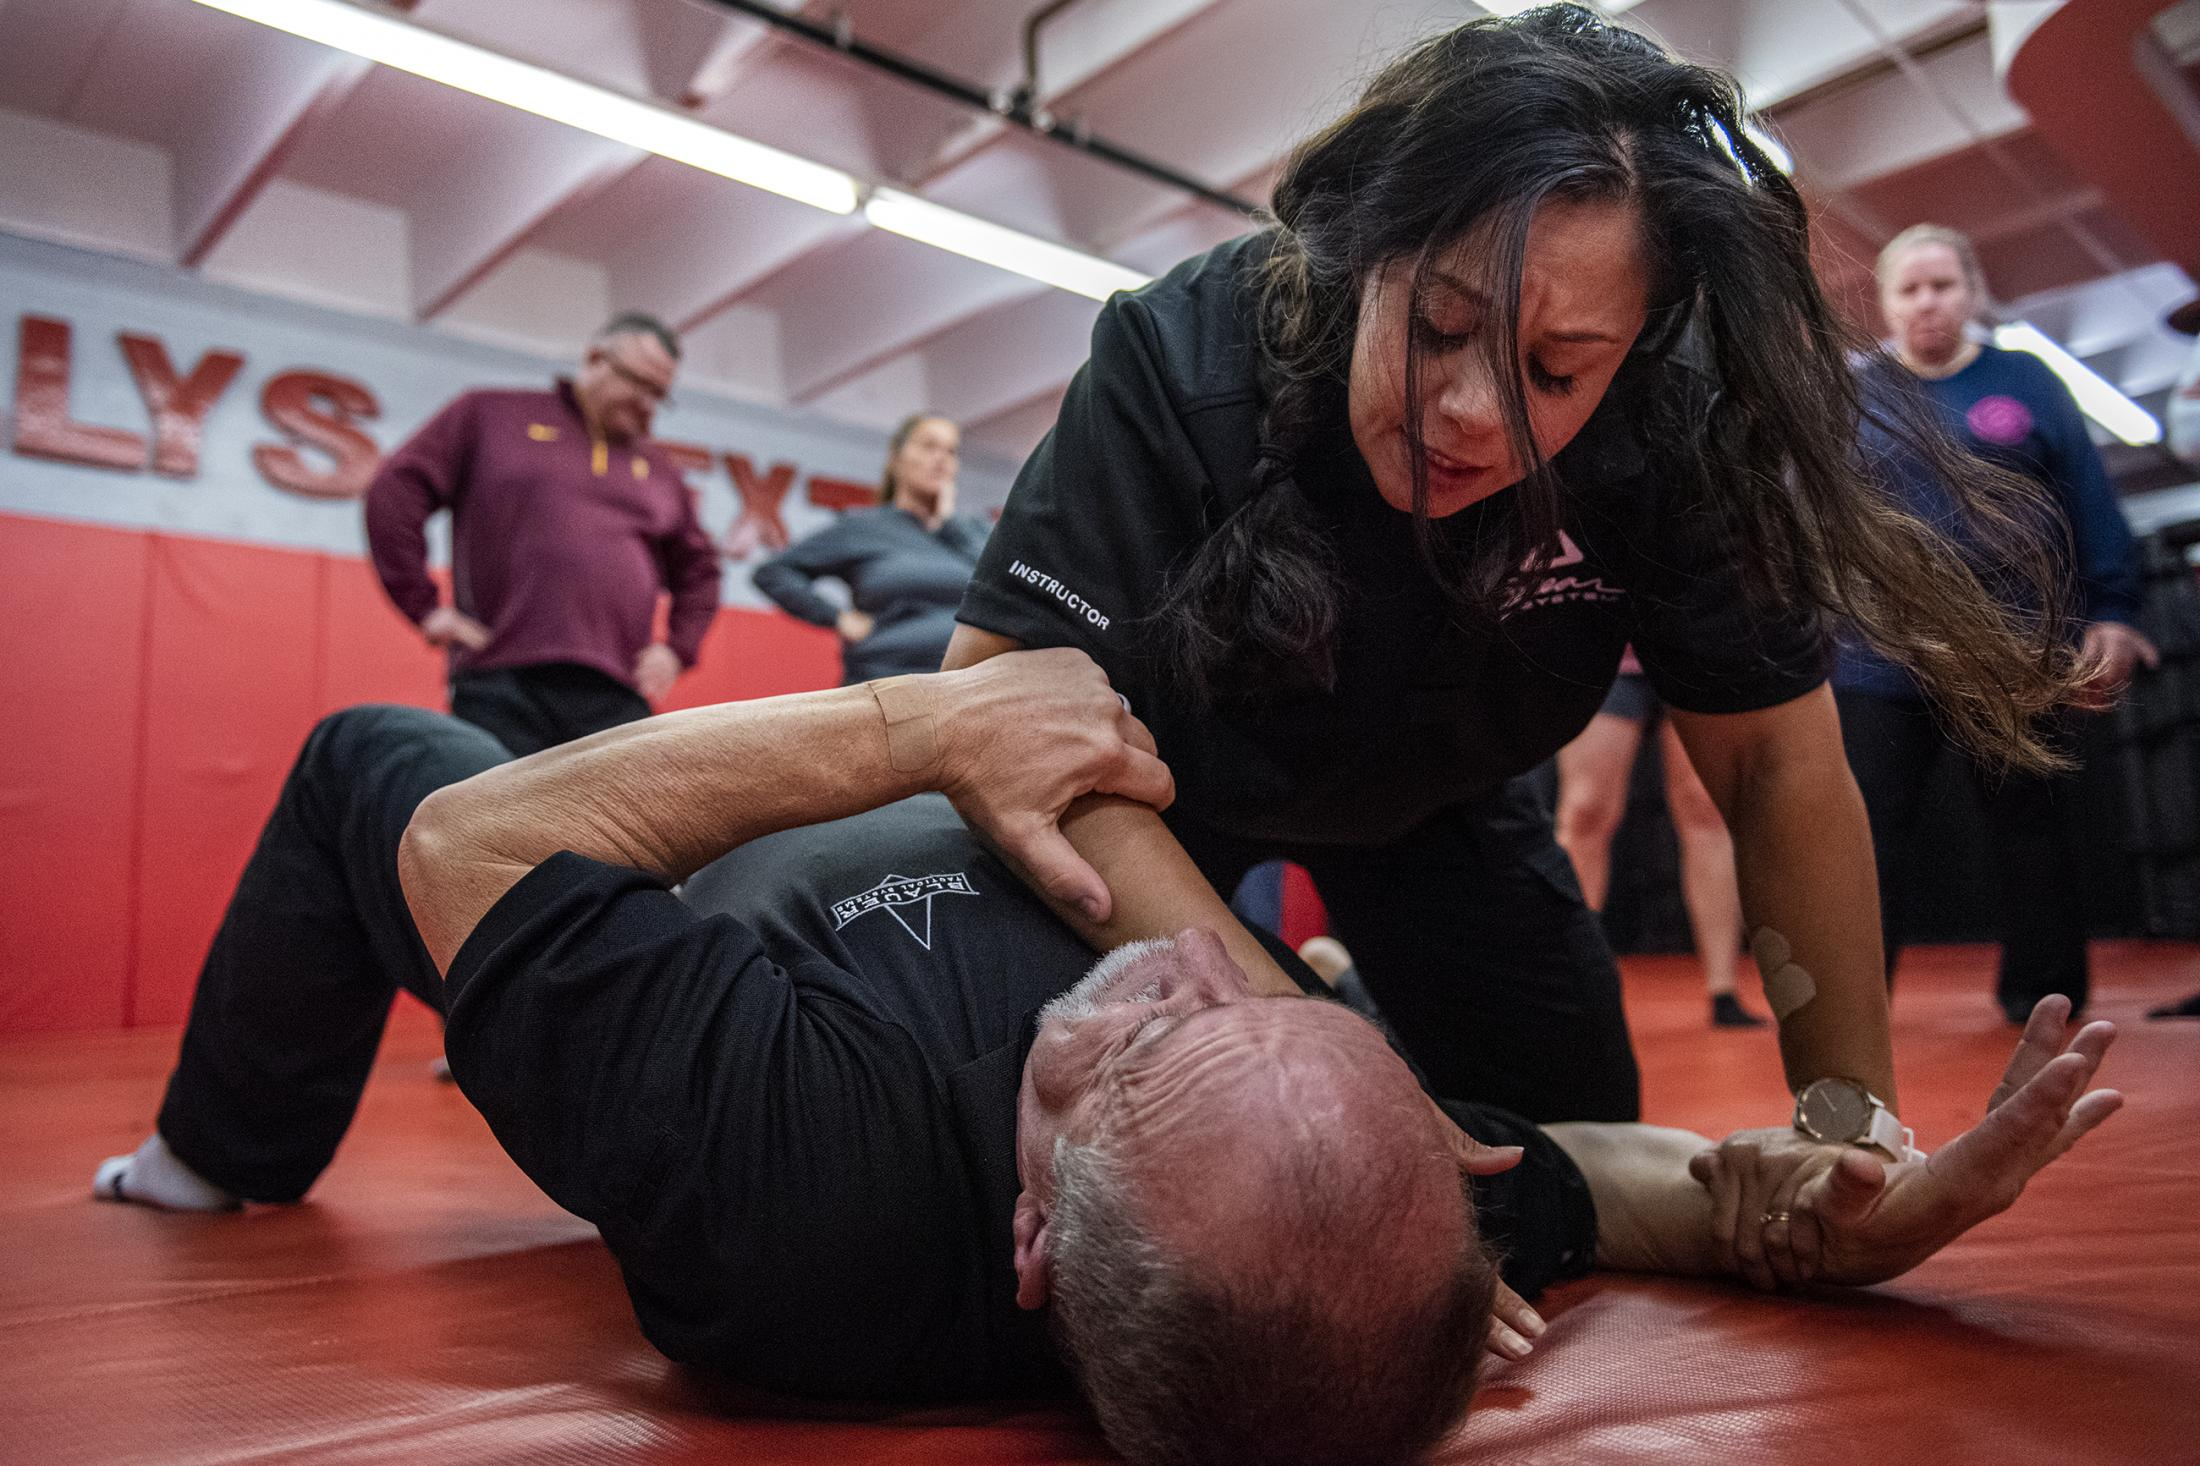 James Pierson and Katie Hurdan, both are instructors at Blauer Tactical Systems, demonstrate how to do self defense in Philadelphia, Pa, on Sat, Nov. 9, 2019.